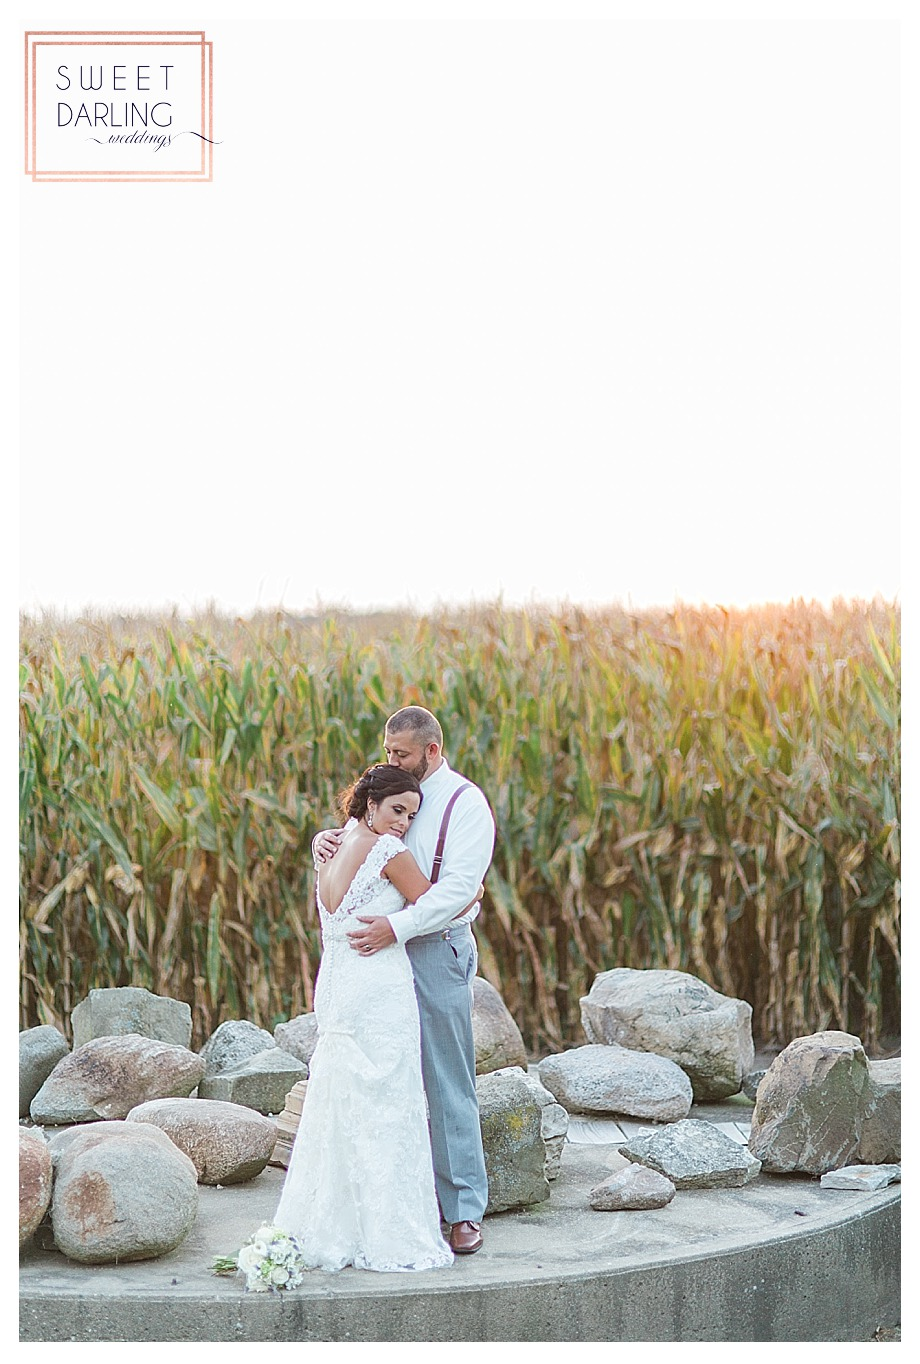 elegant-country-barn-wedding-hudson-farm-urbana-illinois-sweet-darling-weddings-photography_0700